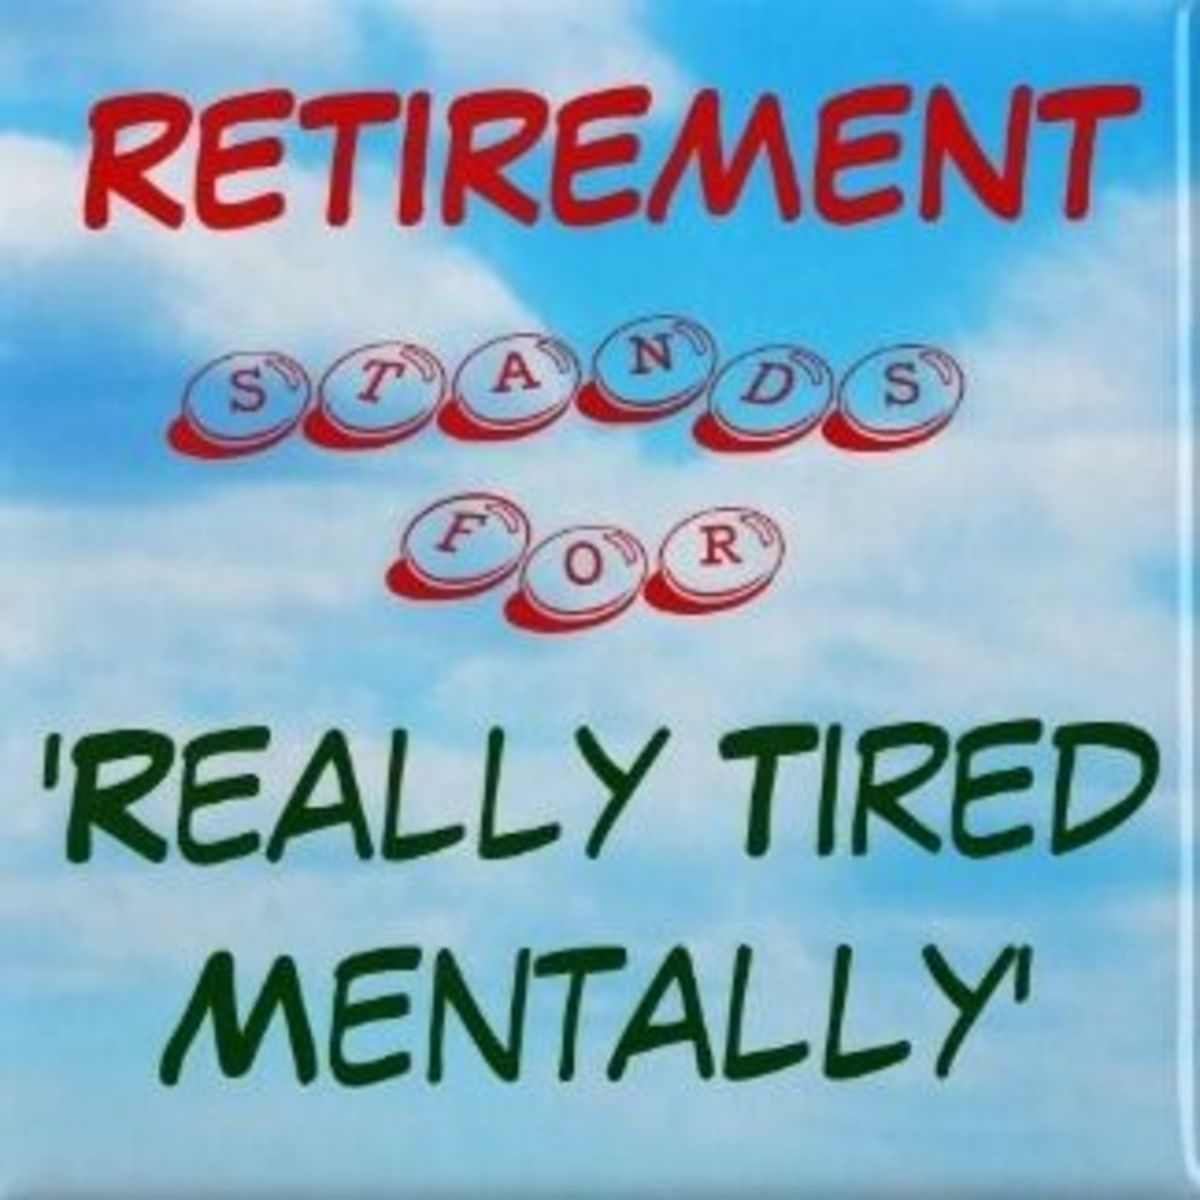 Retirement stands for, 'really tired mentally'